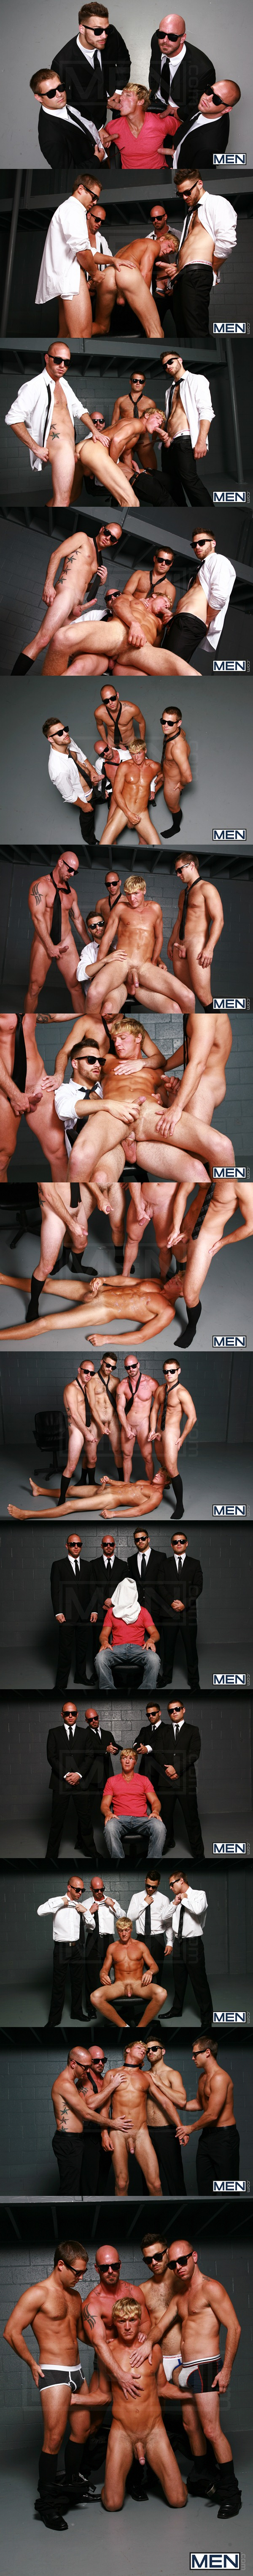 Mitch Vaughn, Tommy Defendi, Rex Roddick & Bobby Clark gangbang fuck Gavin Waters at Jizzorgy 02